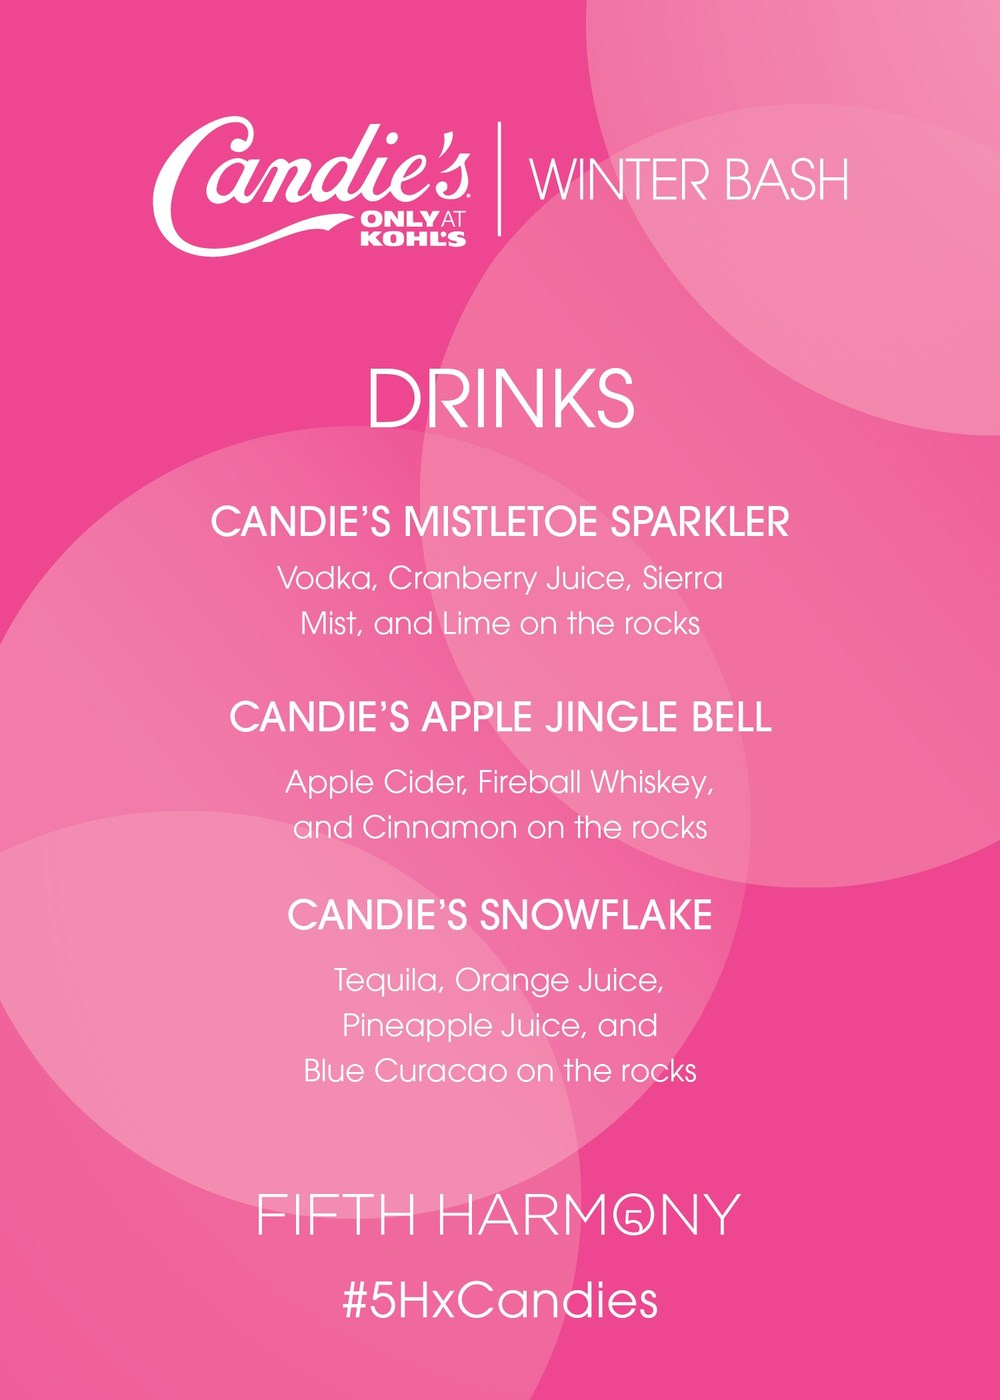 Candies_DrinkMenu_vs02-01.jpg